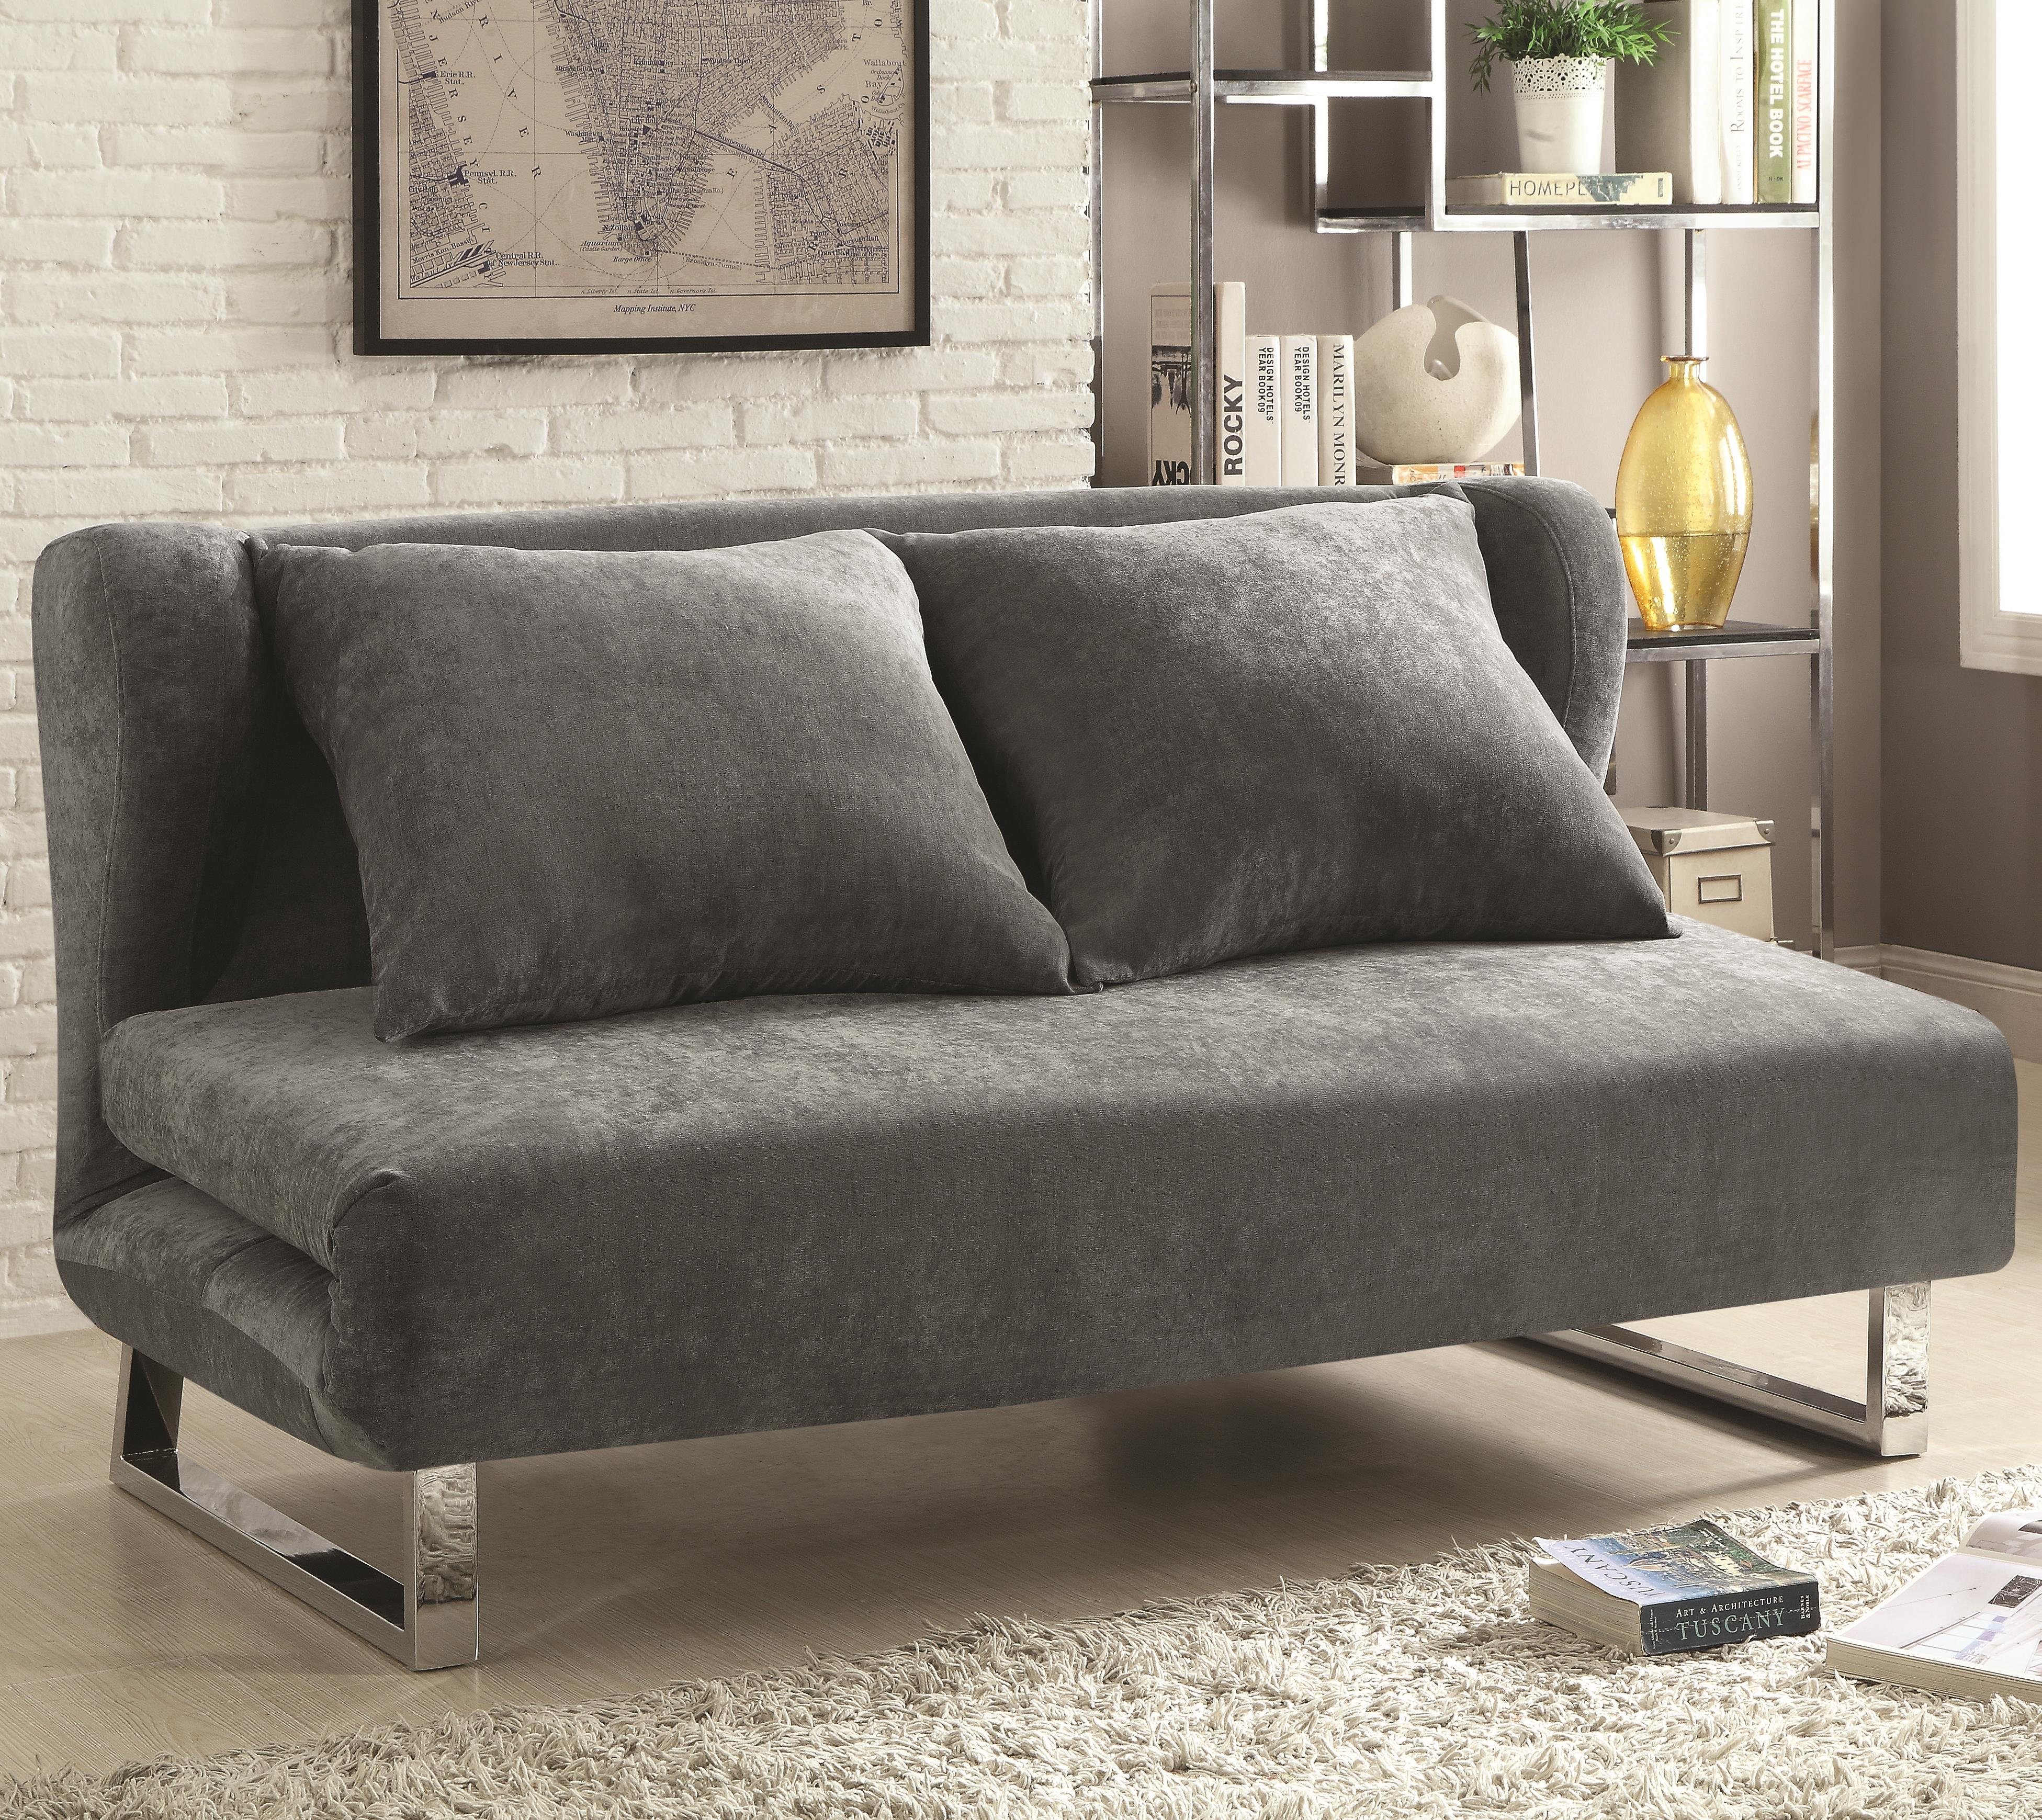 Sofa Beds and Futons Sofa Bed by Coaster at Value City Furniture